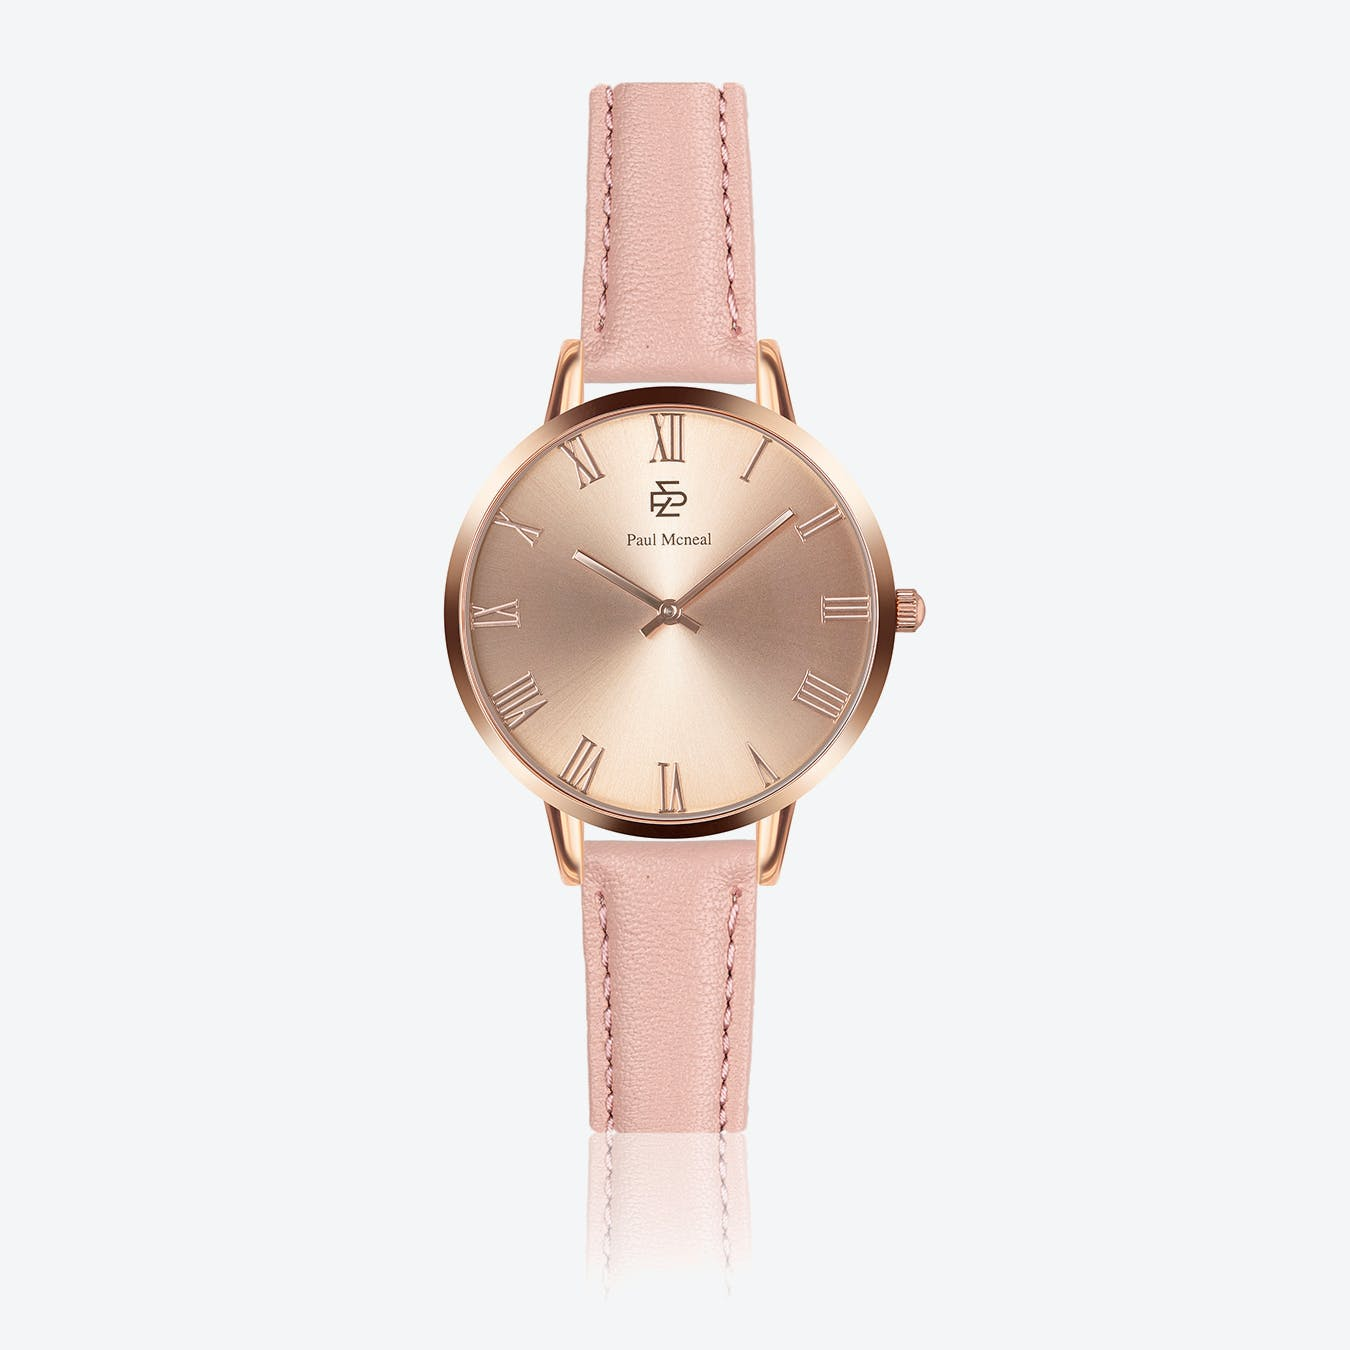 Pink Leather Watch w/ Rose Gold Sunray Face - Ø 38 mm